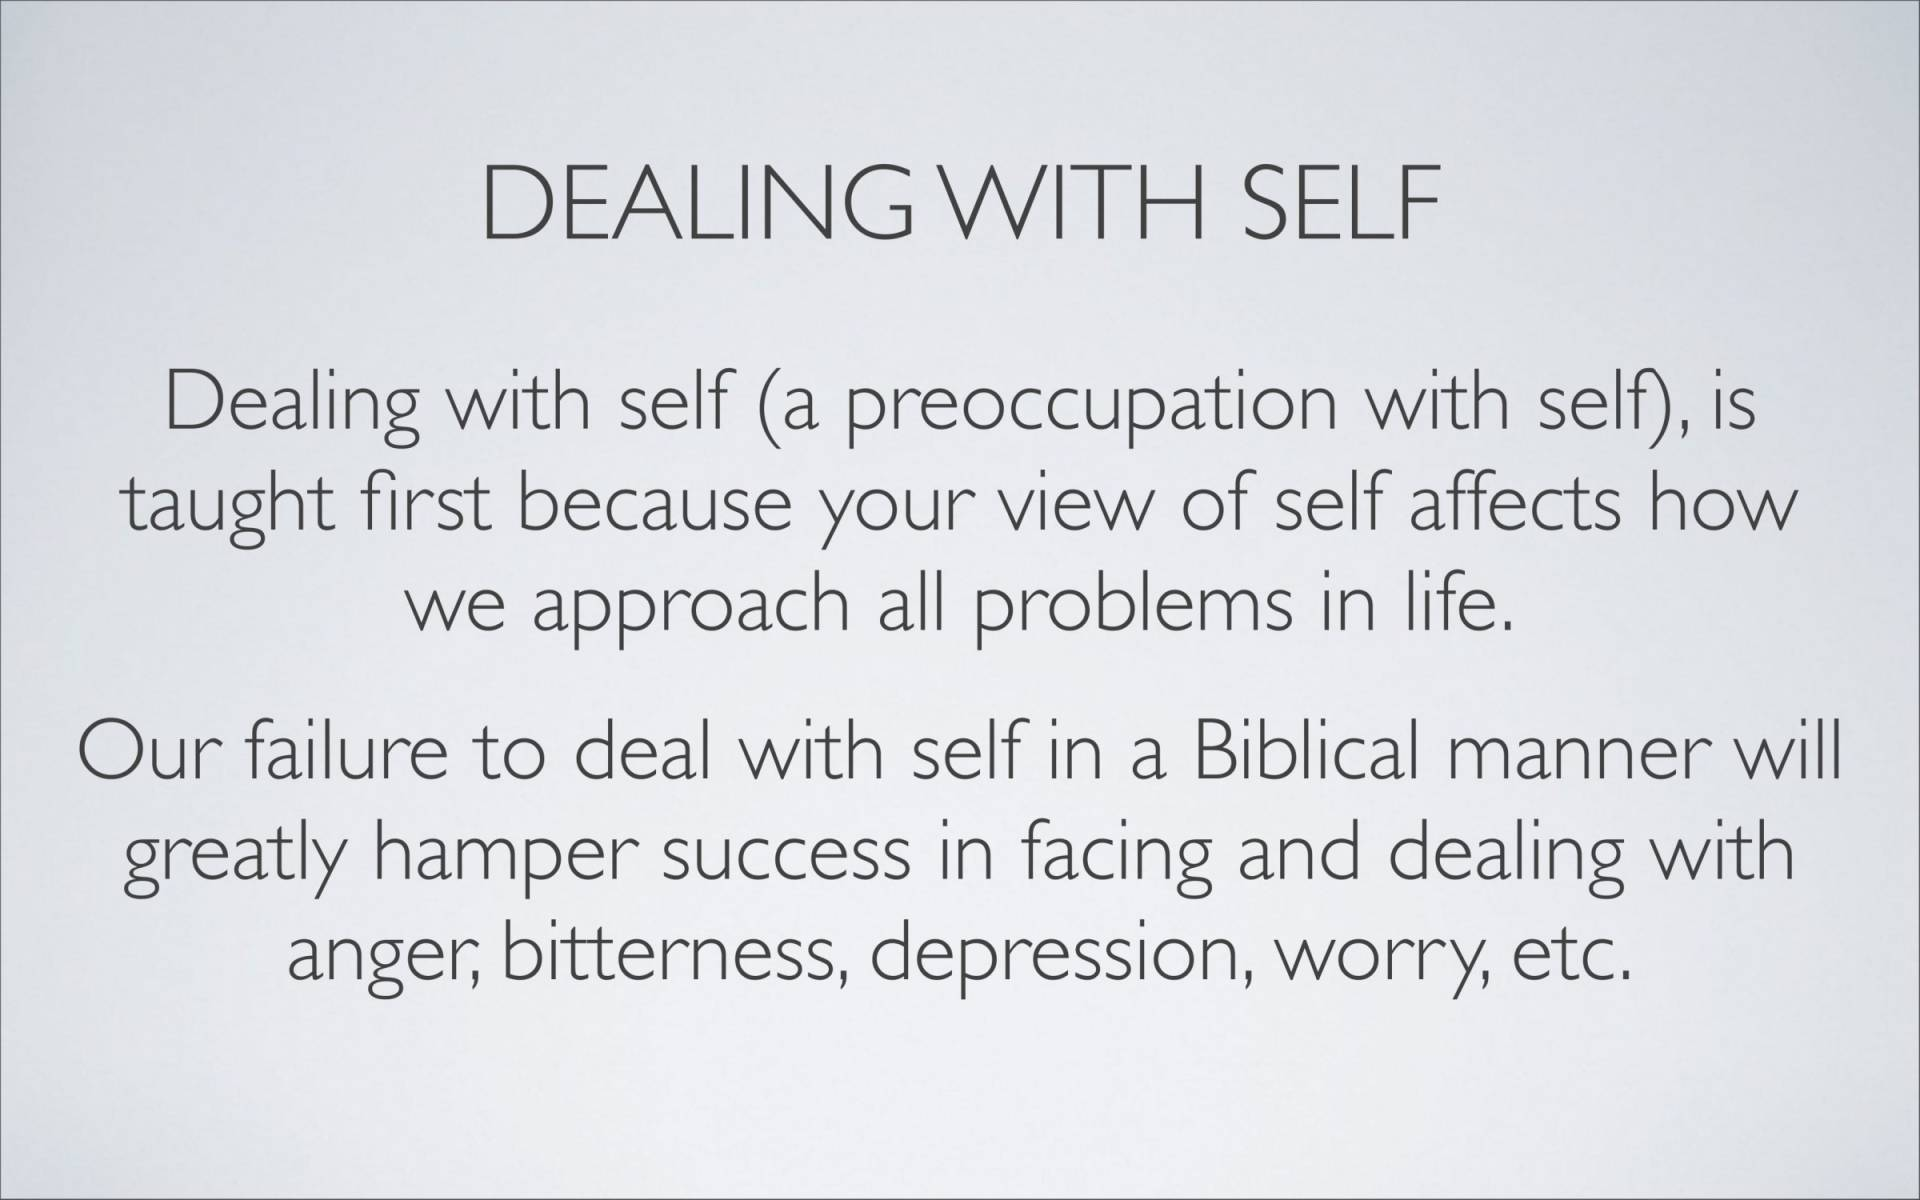 BC&D-29 - Lesson 9-2 - Dealing With Self-04